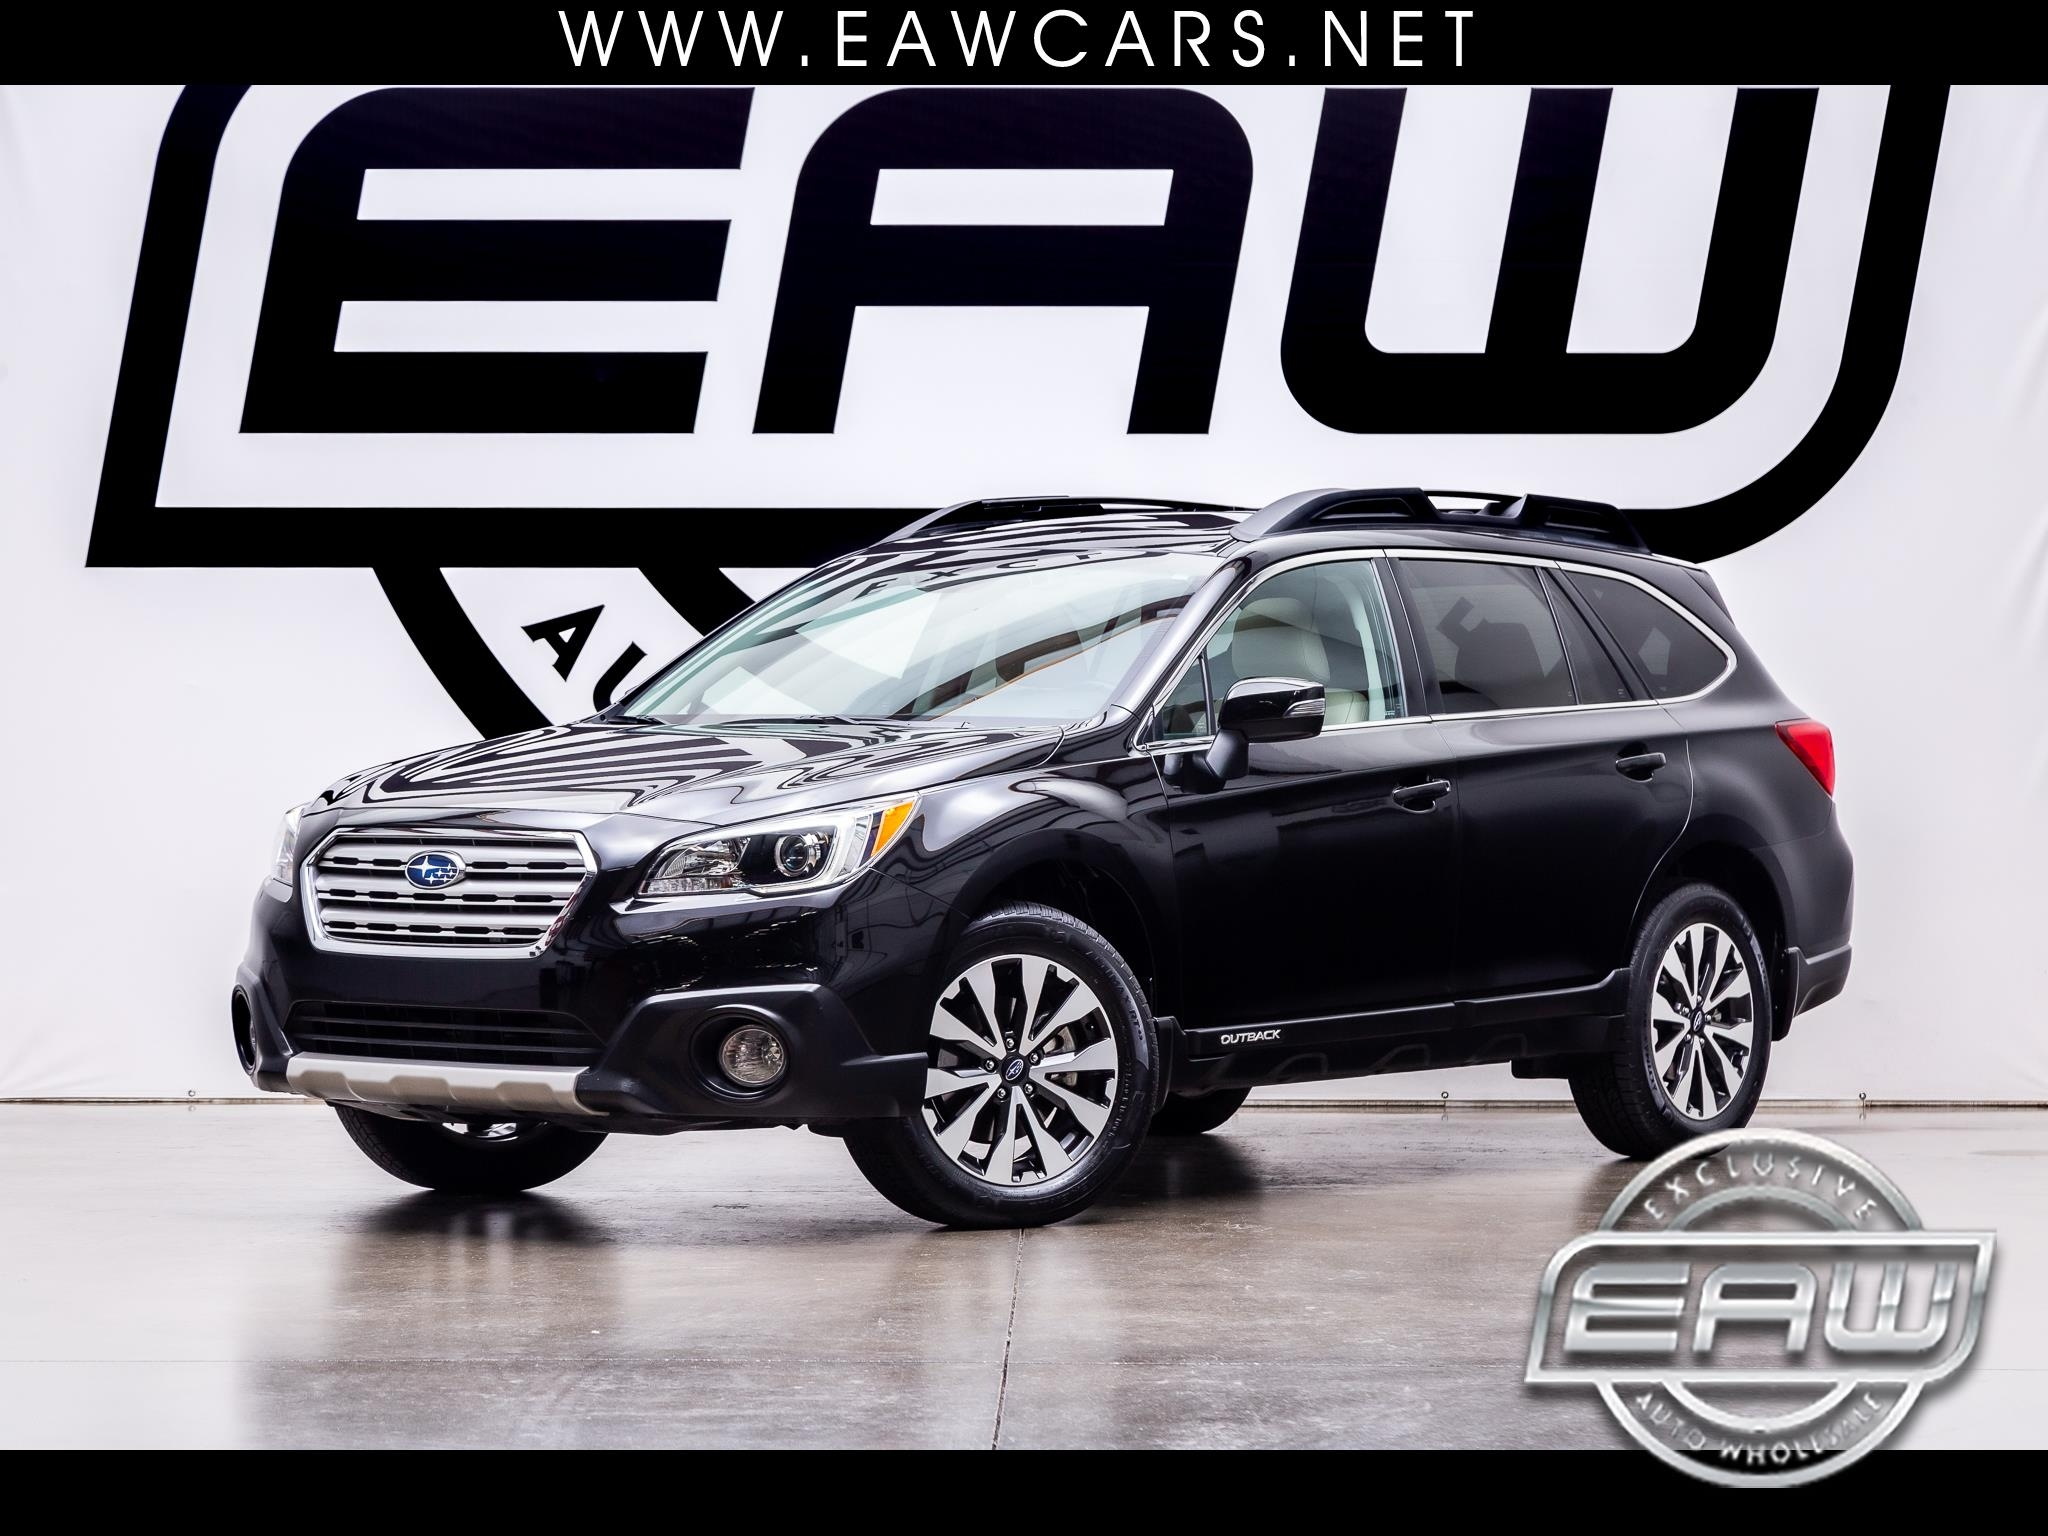 Subaru Outback 4dr Wgn 3.6R Limited 2016